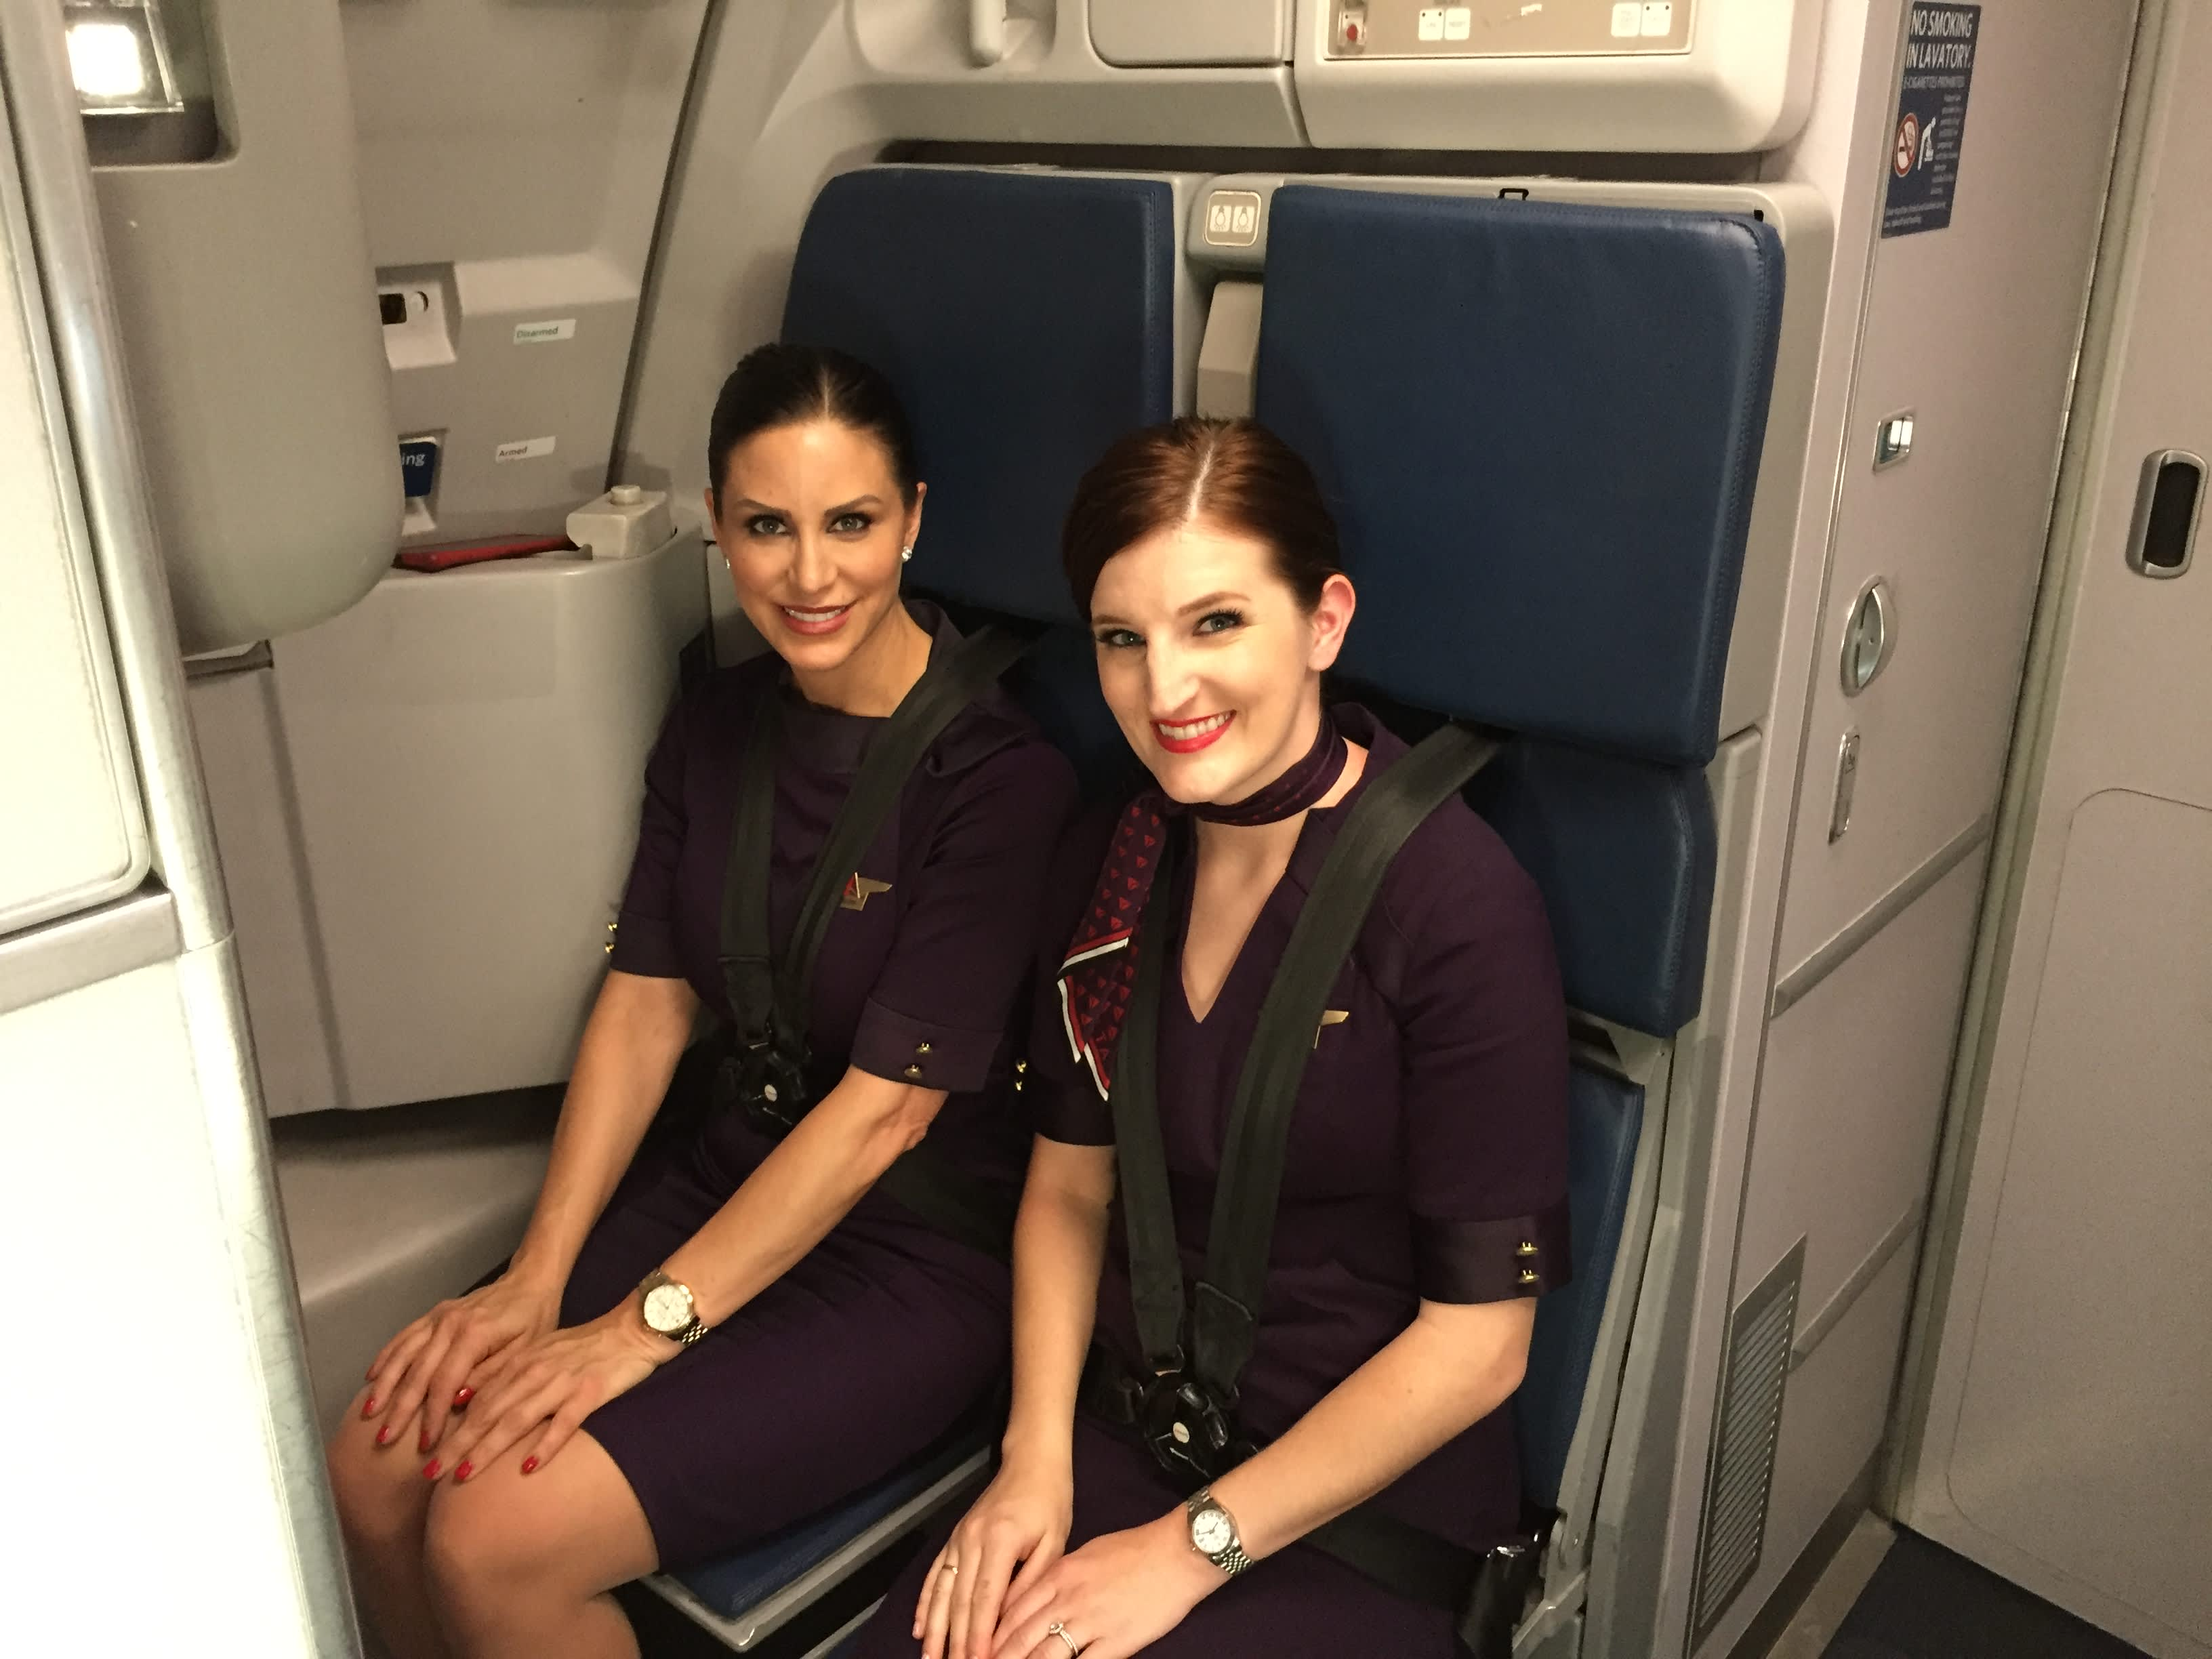 Surprising Facts I Learned Shadowing A Delta Flight Attendant